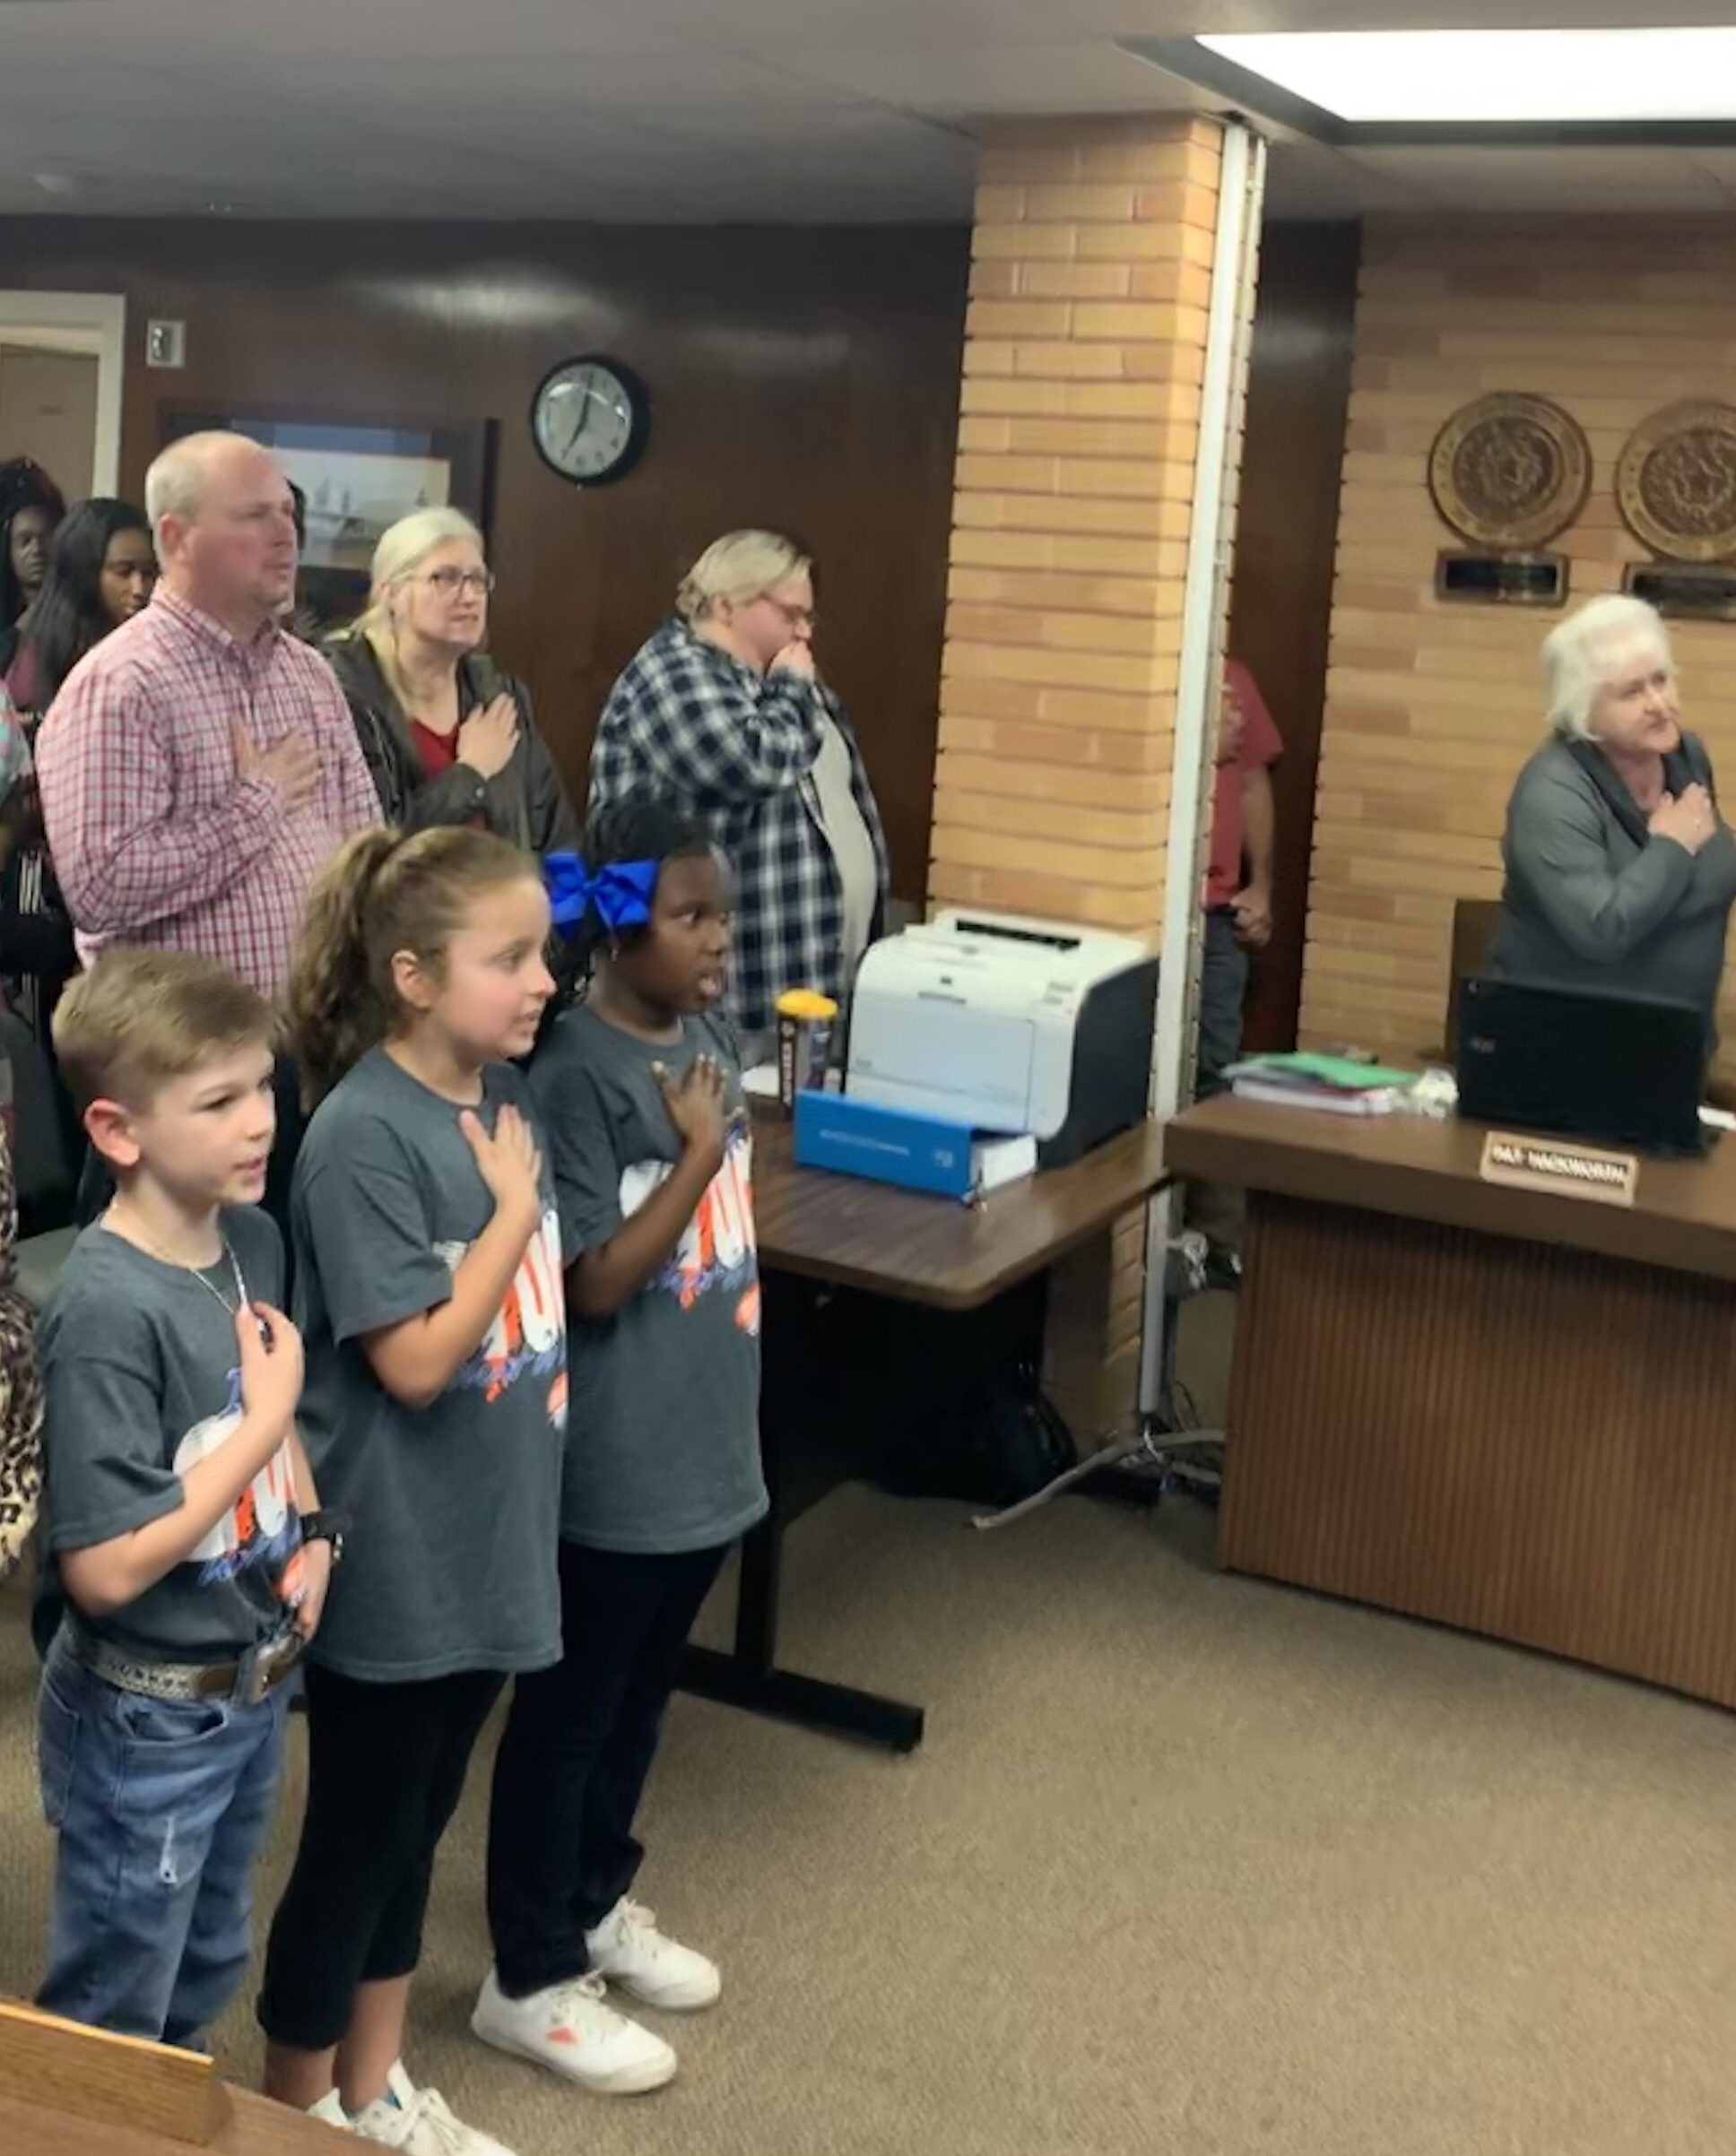 Several Leopard Luminaries honored at the Van Vleck ISD Monthly School Board Meeting - February 25, 2019